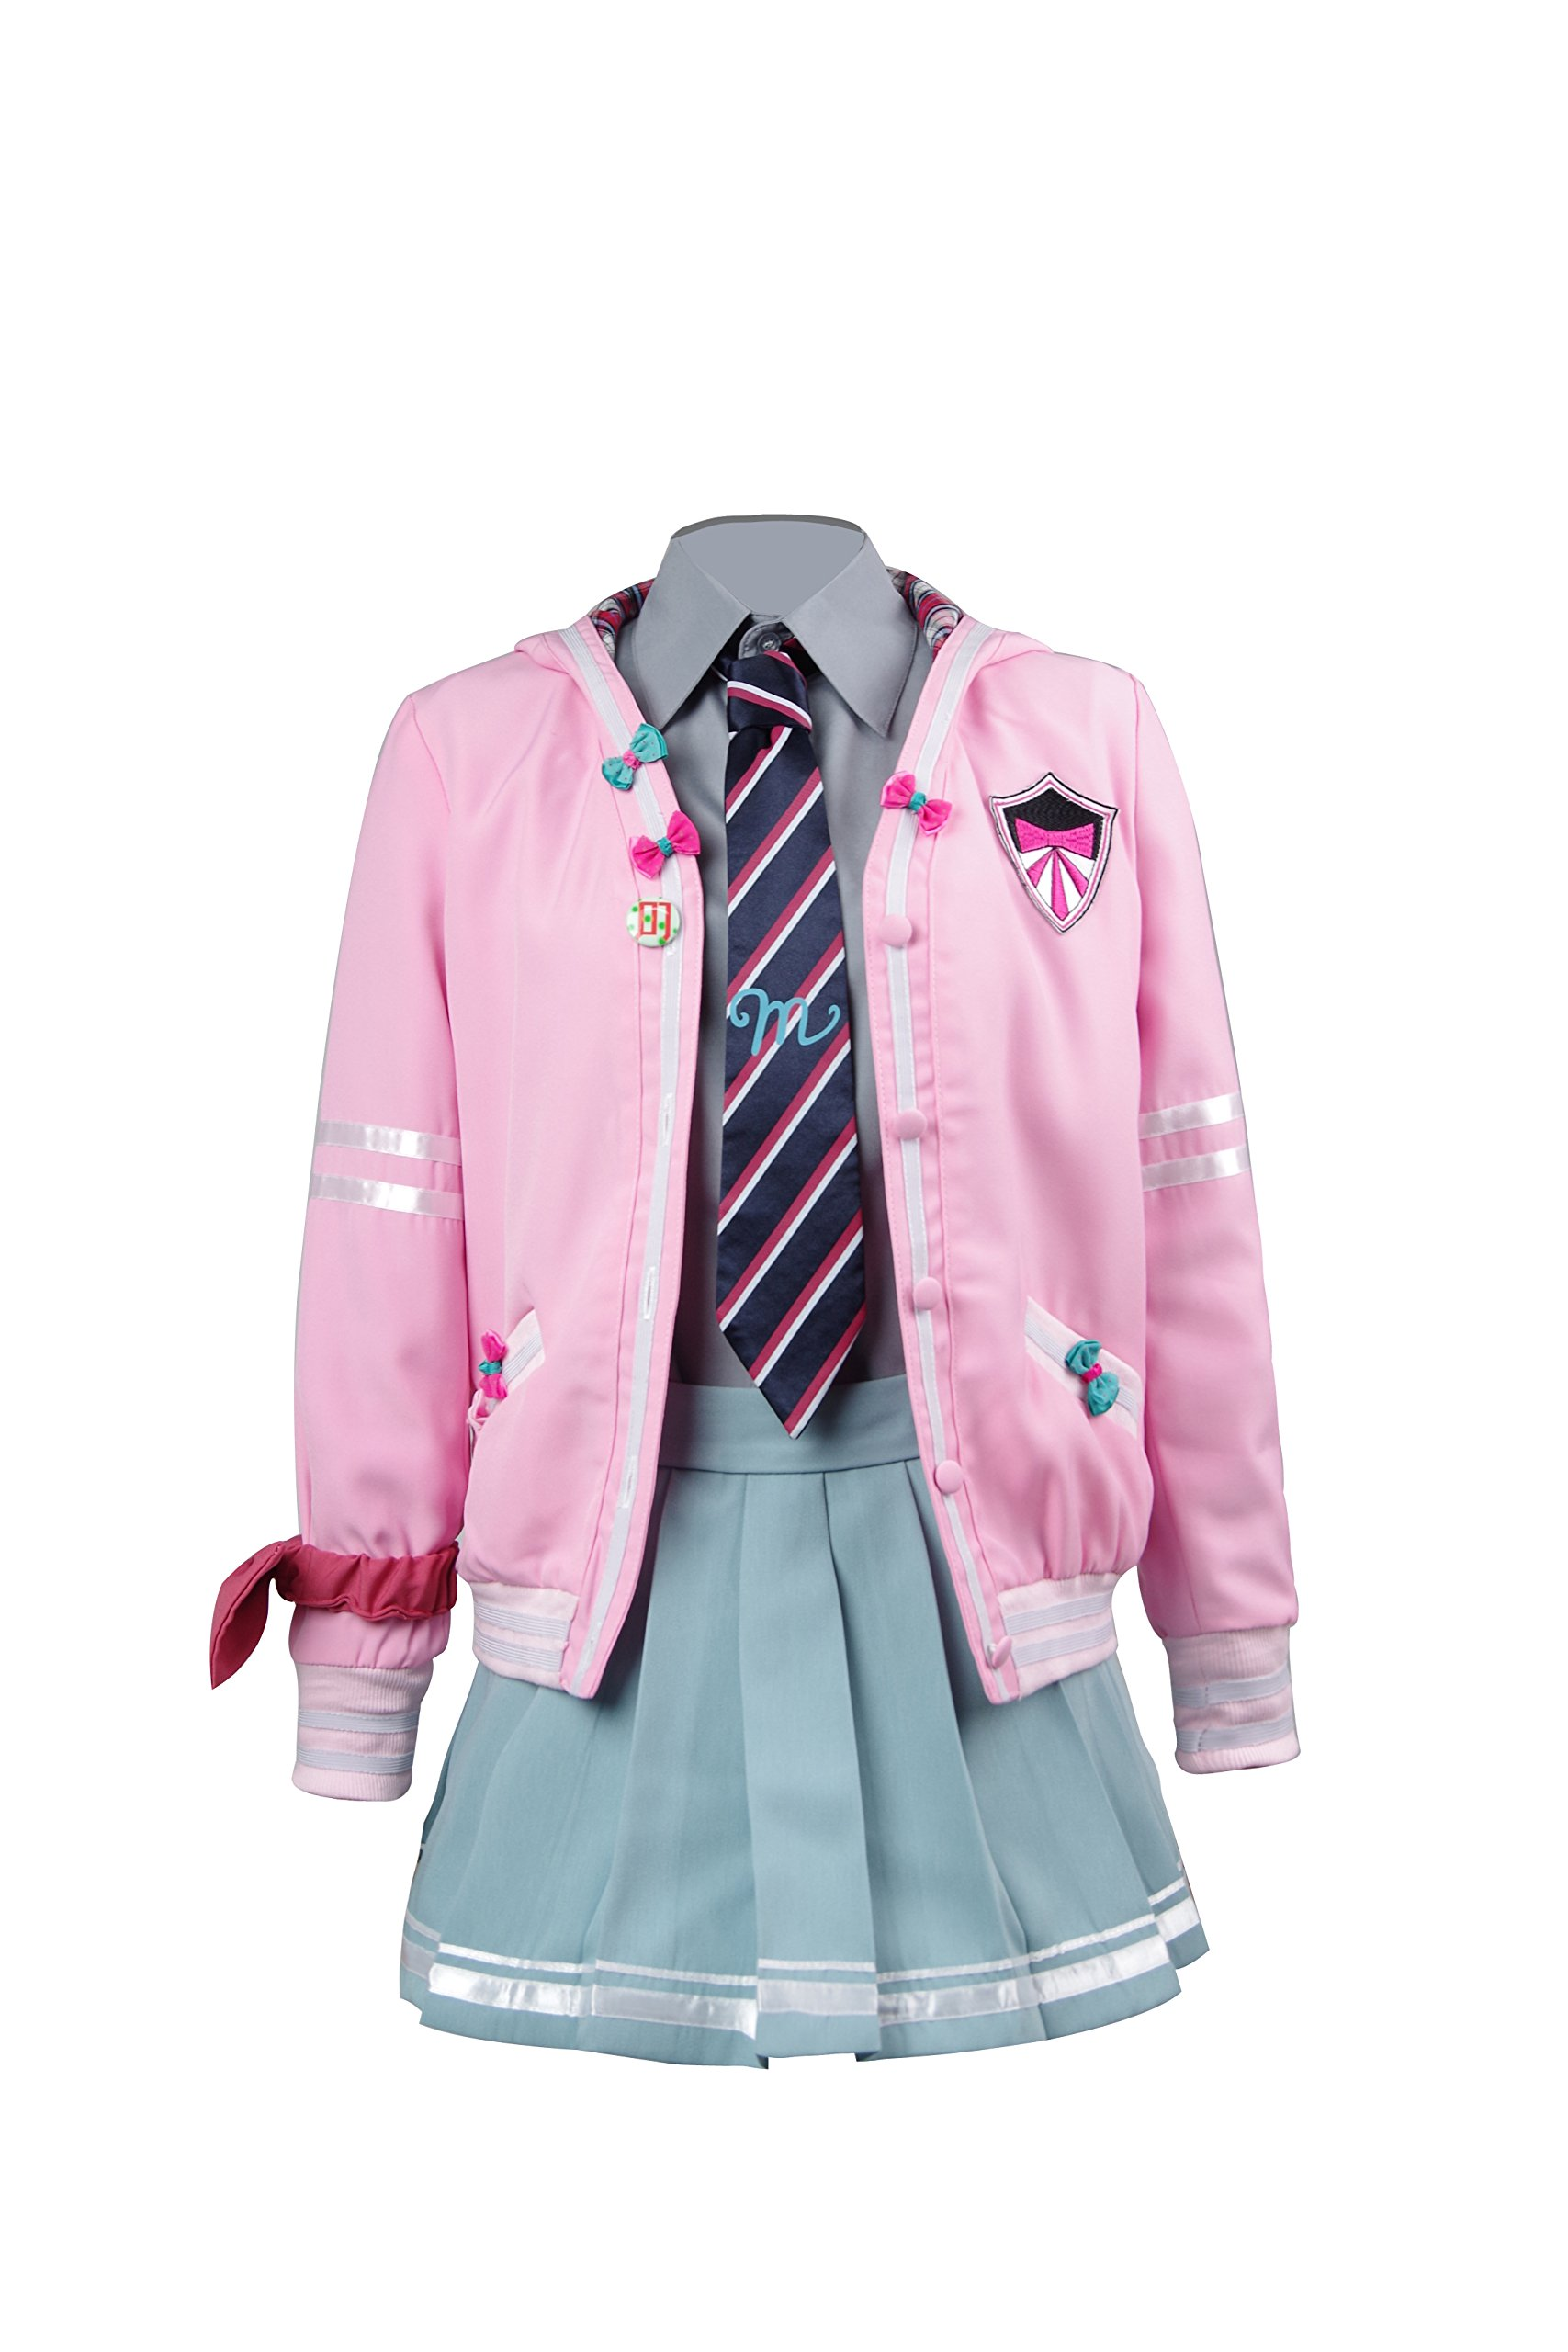 TISEA Japanese Anime Clothes Classic Navy Sailor Suit Short Sleeve Girl Students School Uniforms (US XS, Hatsune Miku)